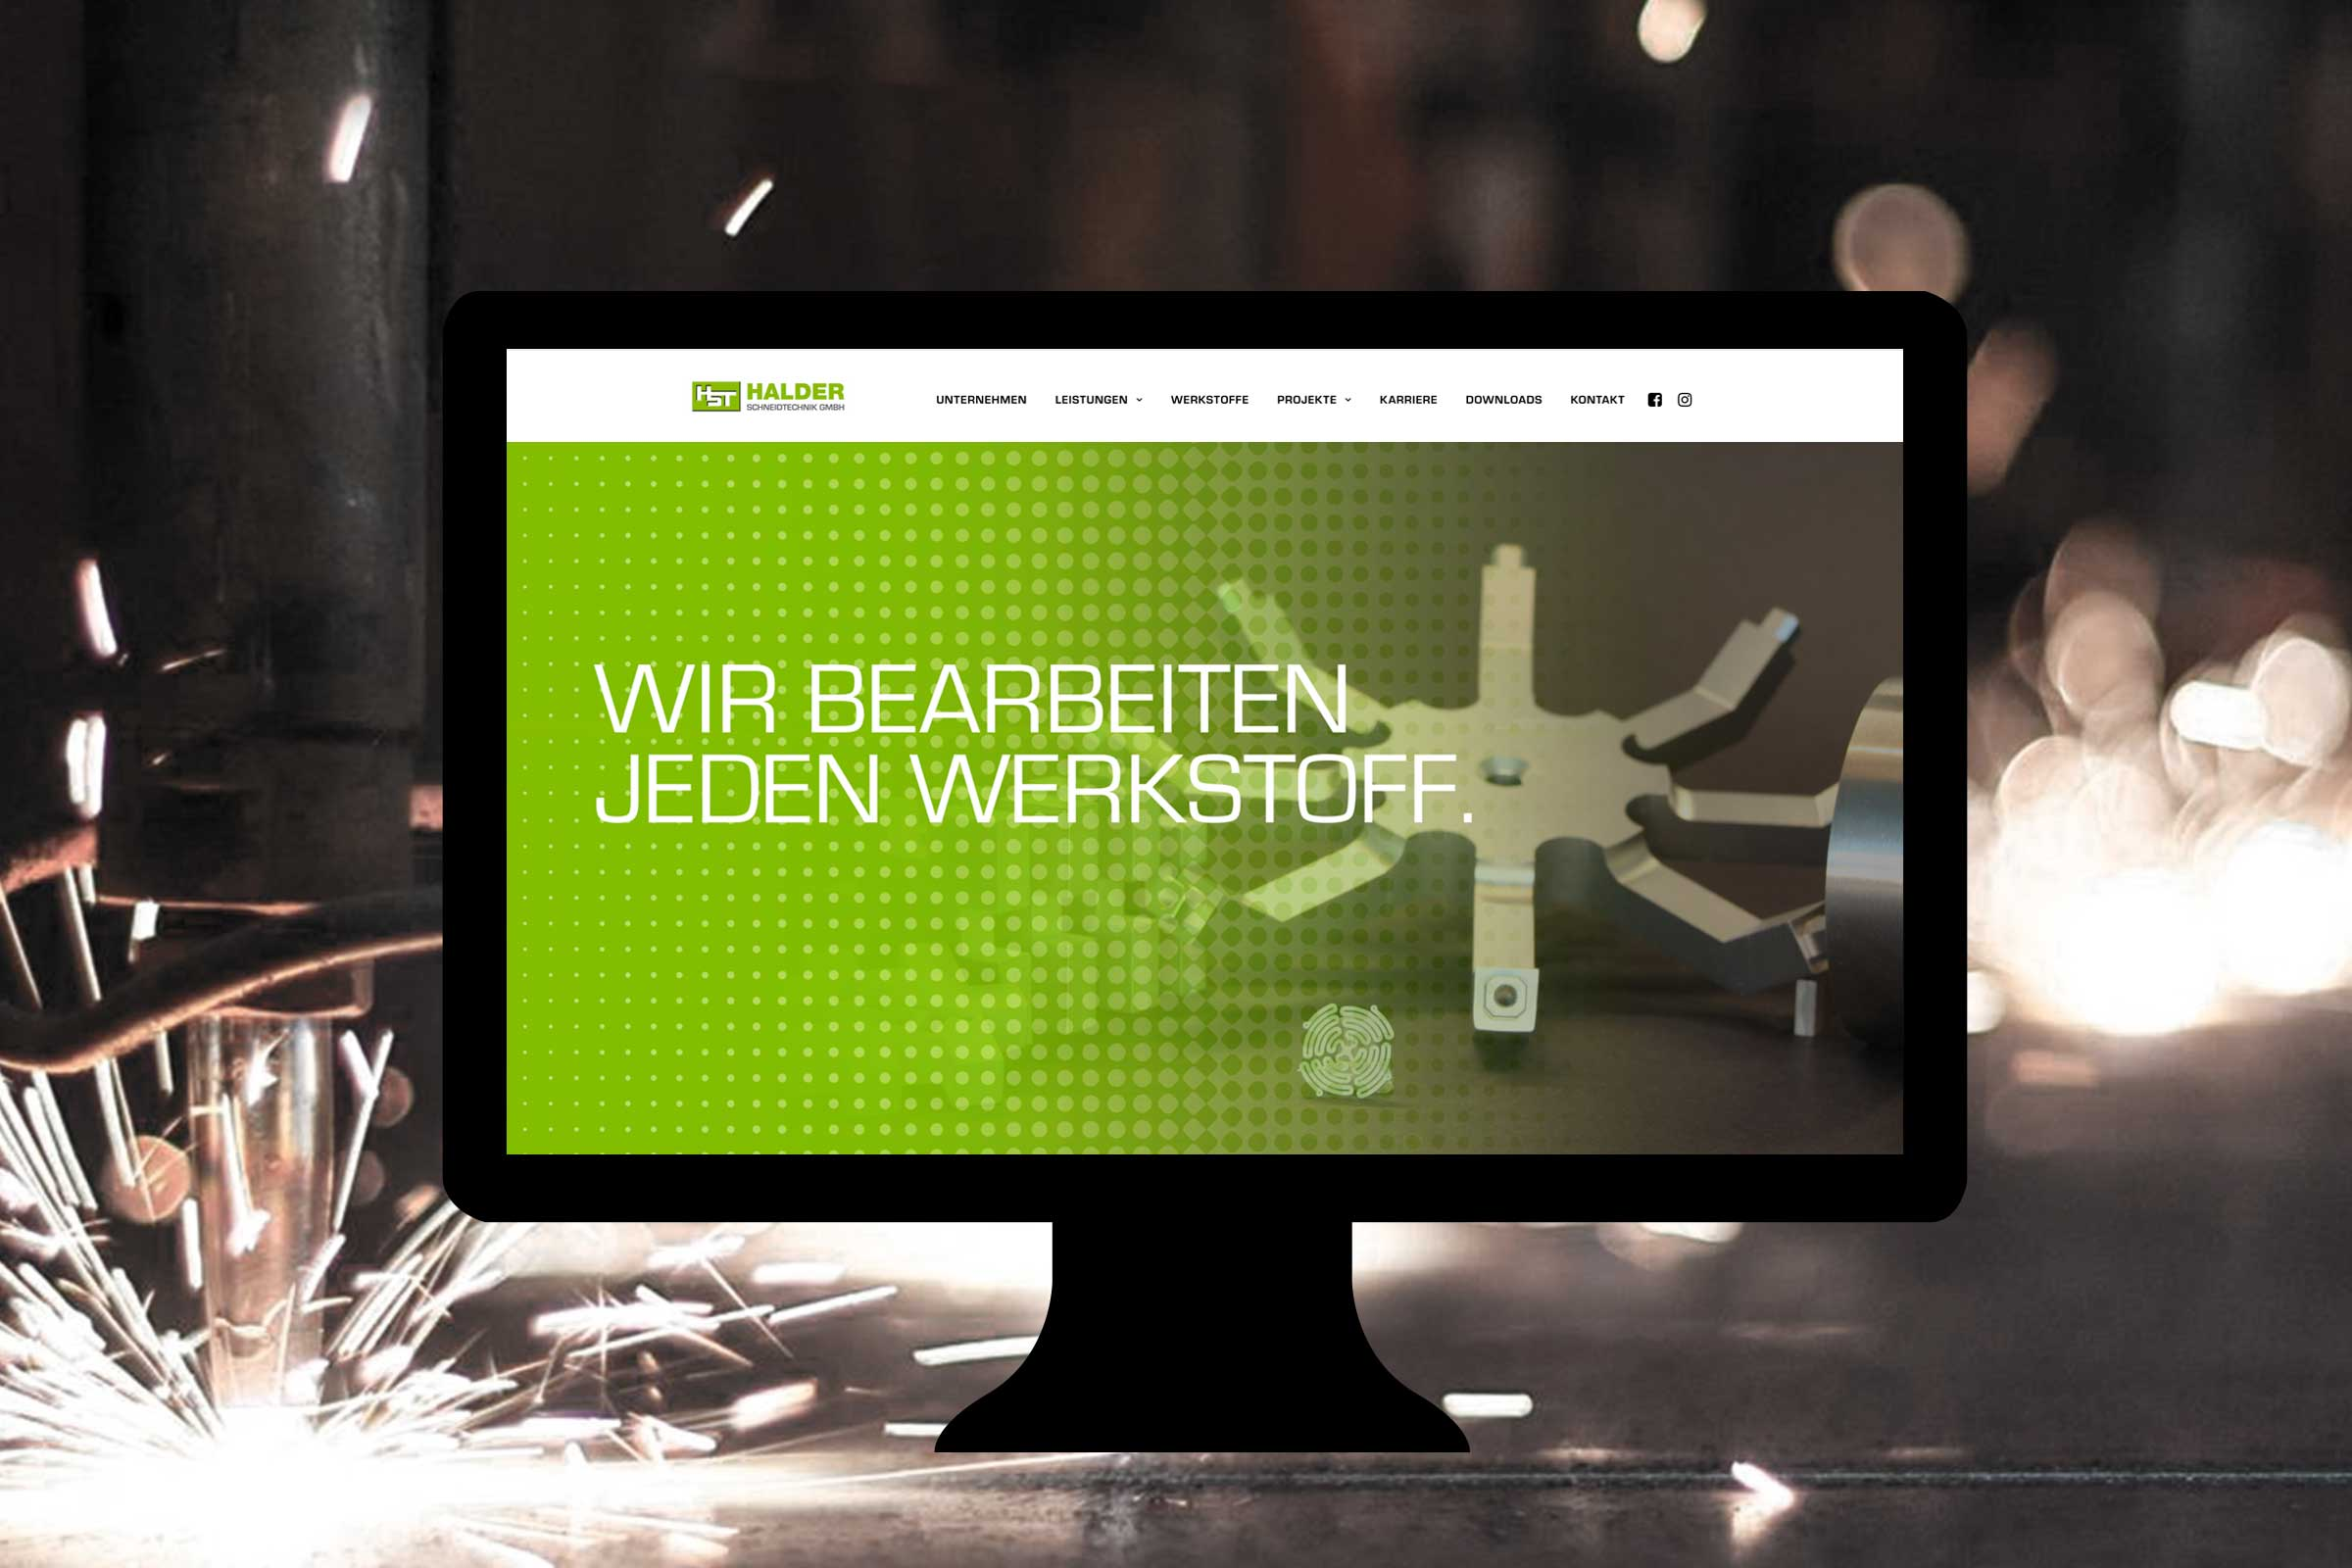 halder schneidtechnik website relaunch